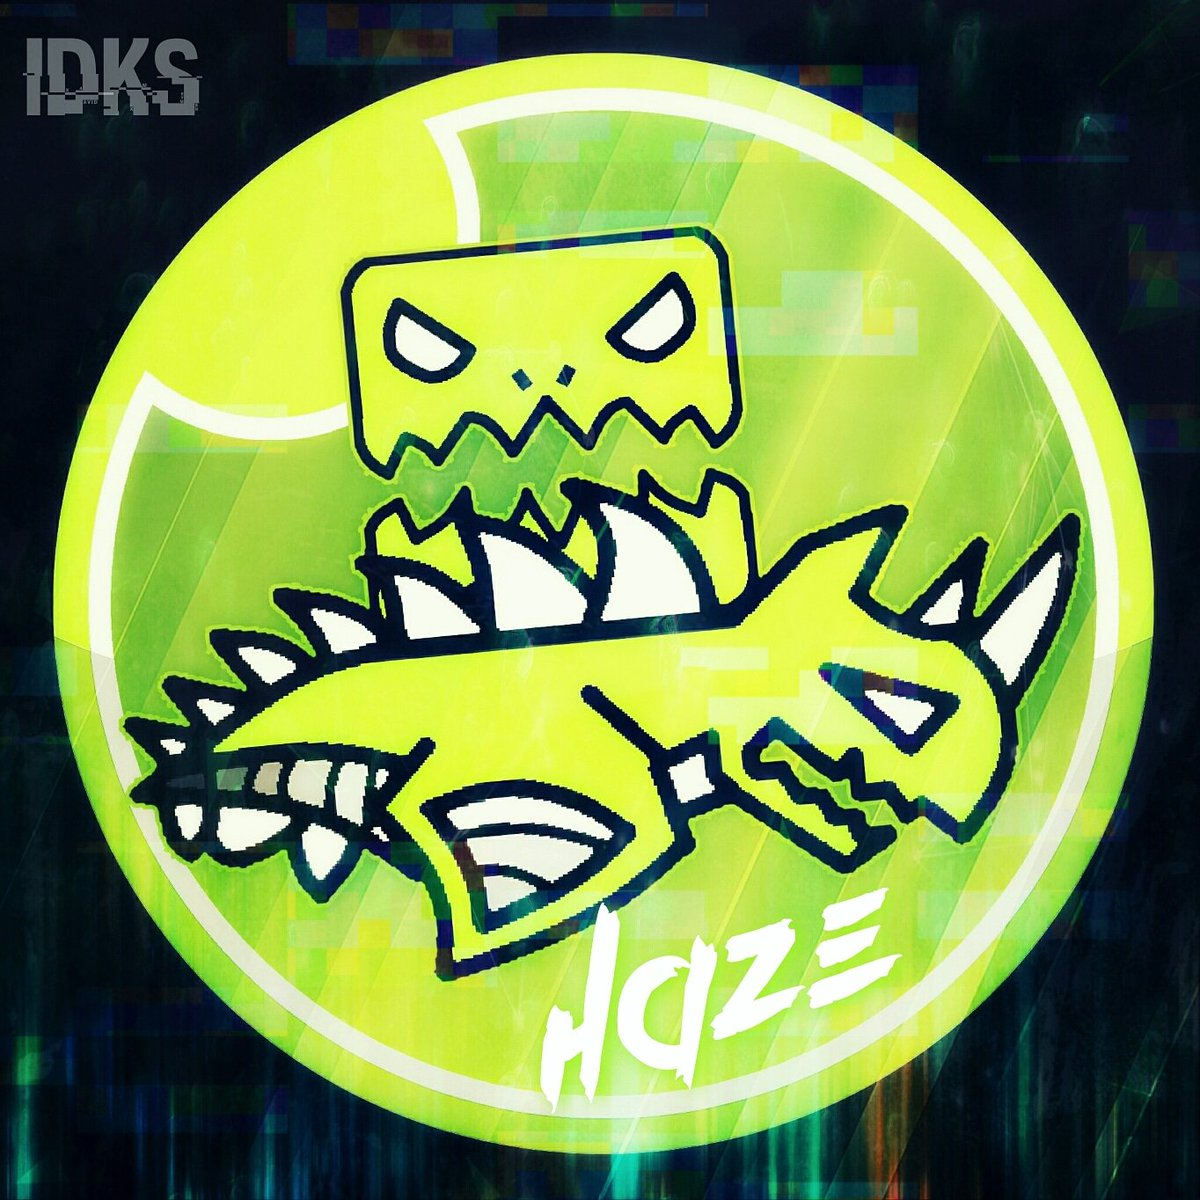 Hāze #Geometrydash #Geometrydashgfx #Geometrydashicons pic.twitter.com/BCo9G8GyAZ